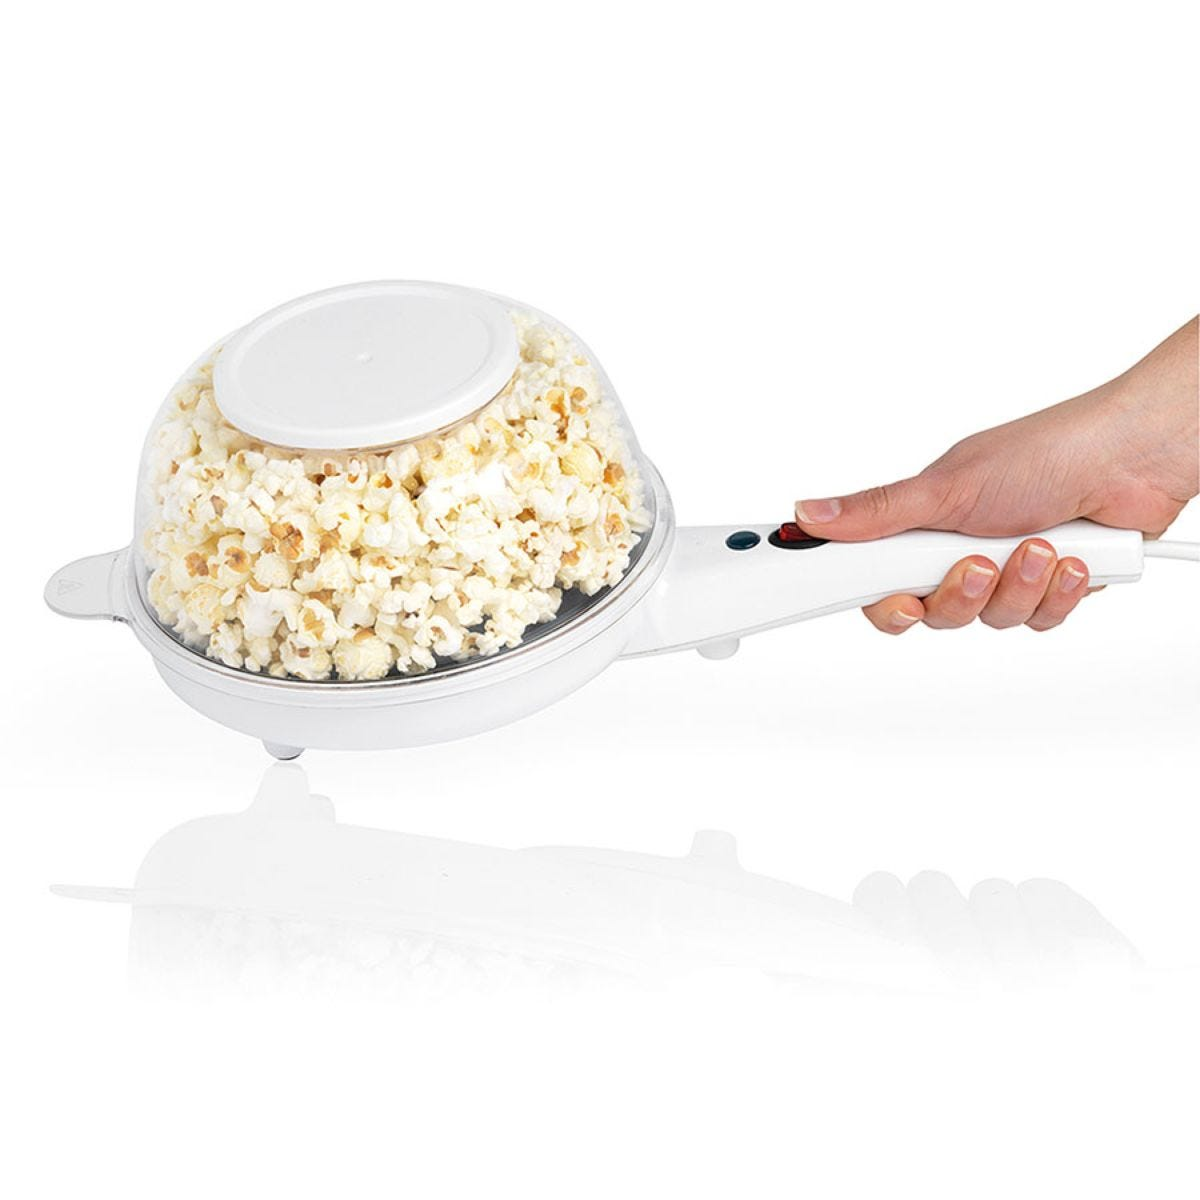 Giles & Posner EK2204 Healthy Fat Free Electric Popcorn Maker with Bowl - White